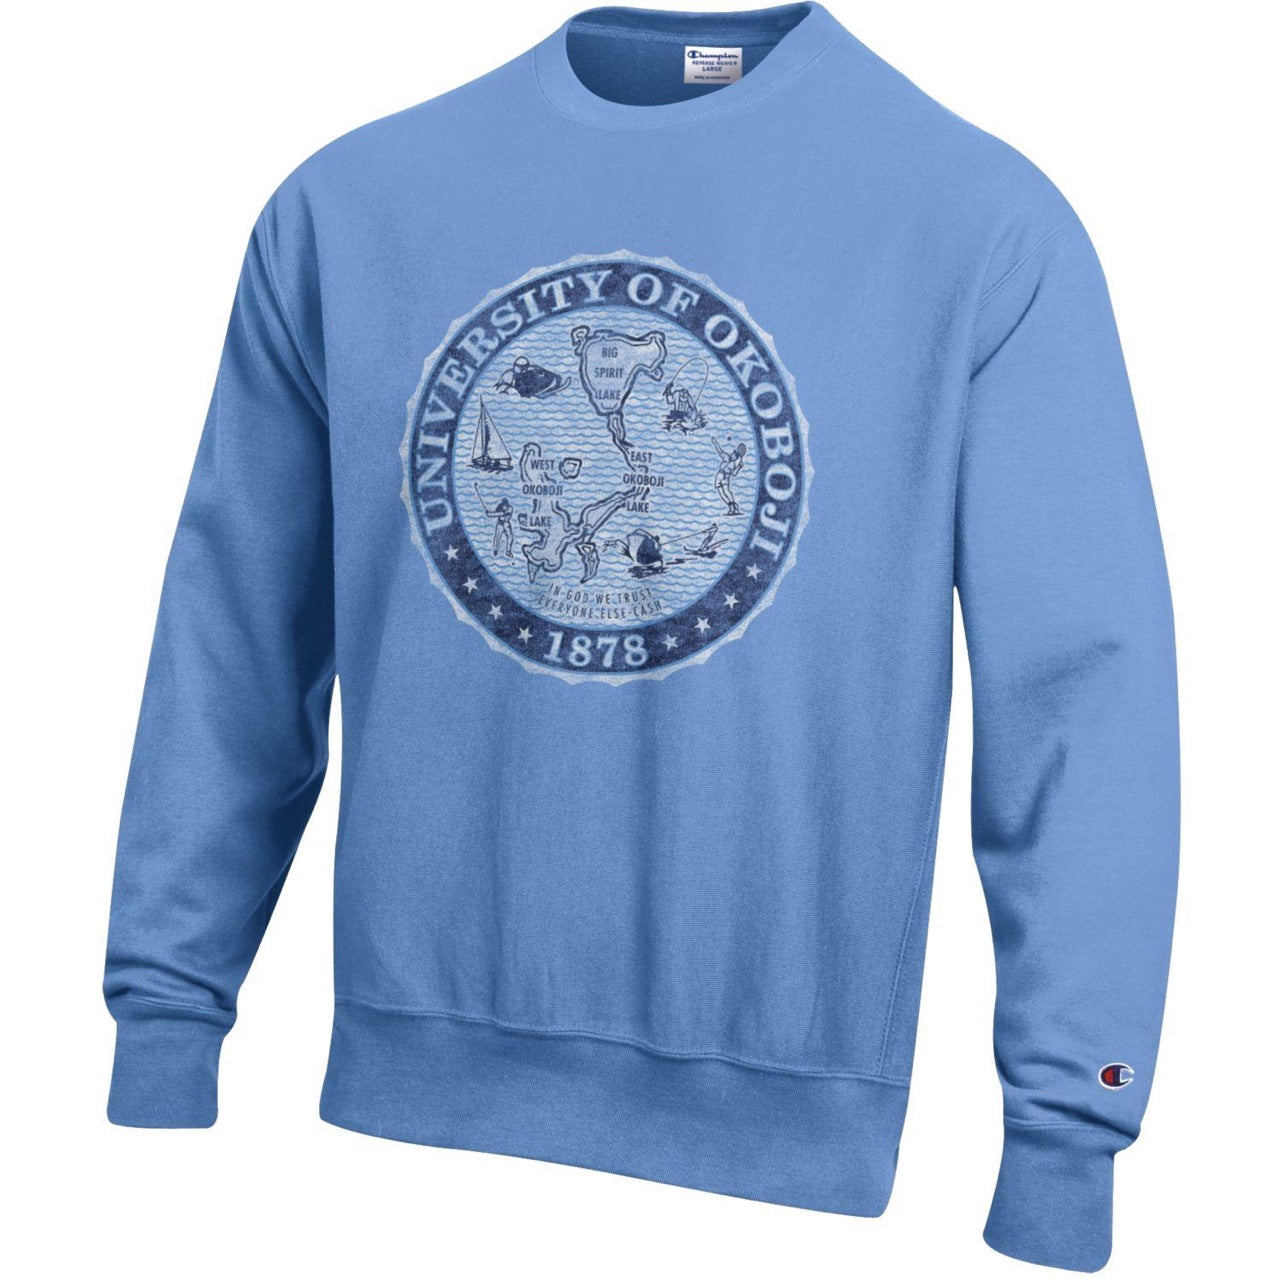 The Skyblue Champion Reverse Weave Crest Crew